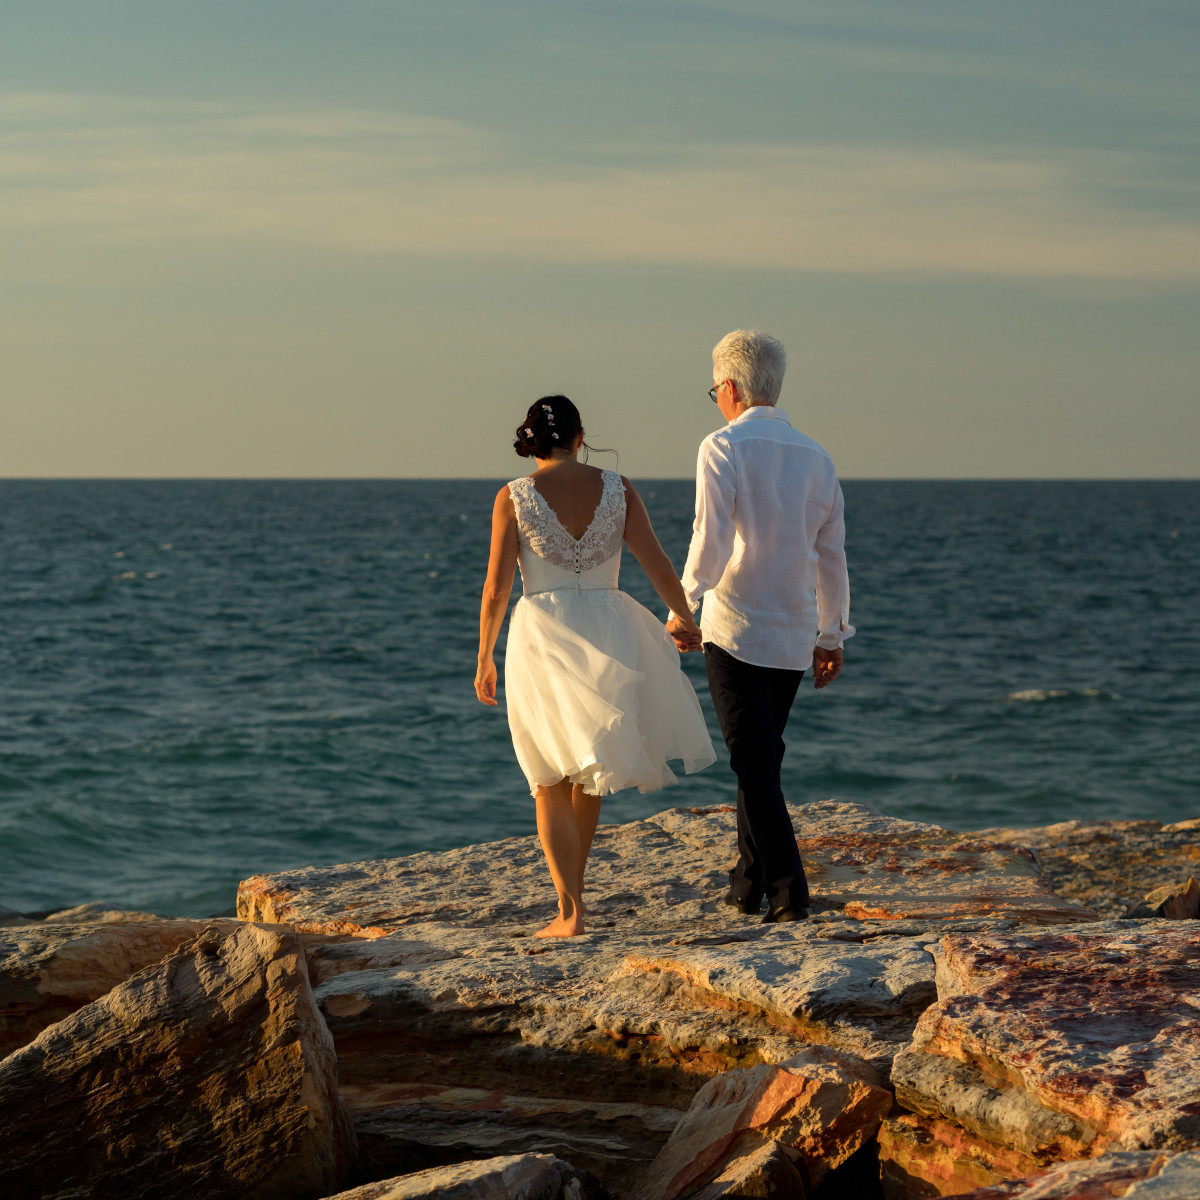 Surge Films - Matthew Adams. Experienced, professional, creative. Video, photography, drone services in Broome. Weddings, commercial, corporate, industrial.